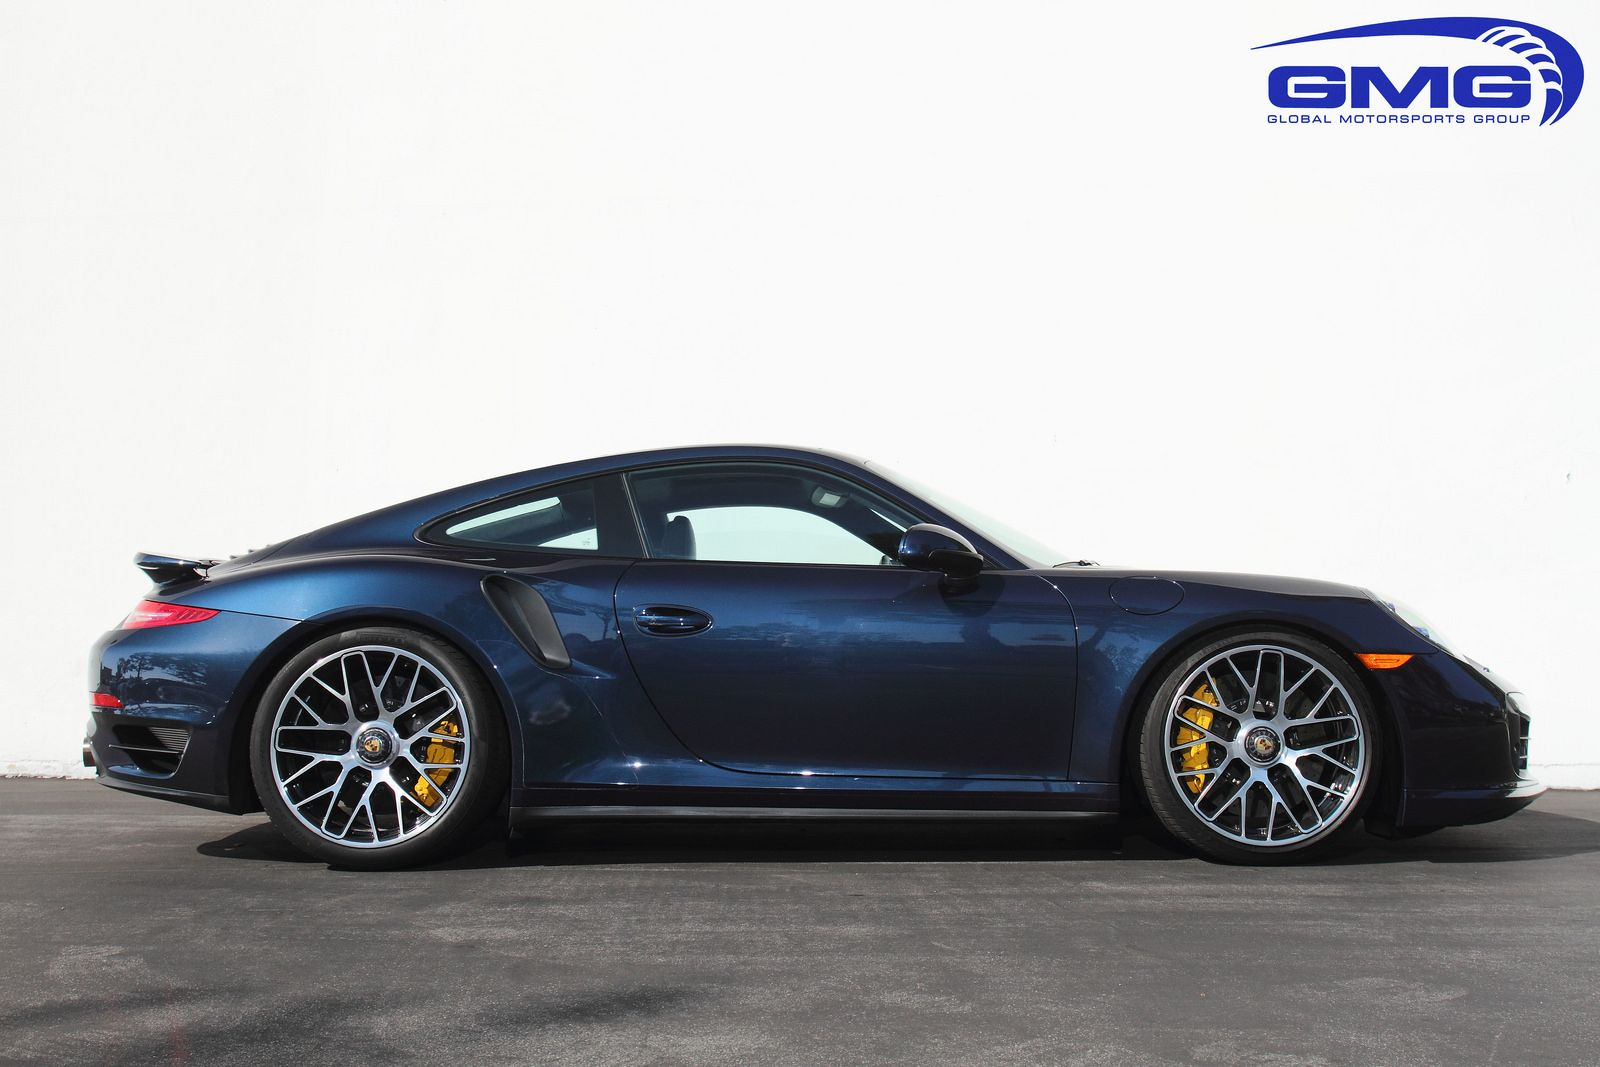 Porsche 991 turbo s dark blue metallic w gmg lowering springs exhaust headers